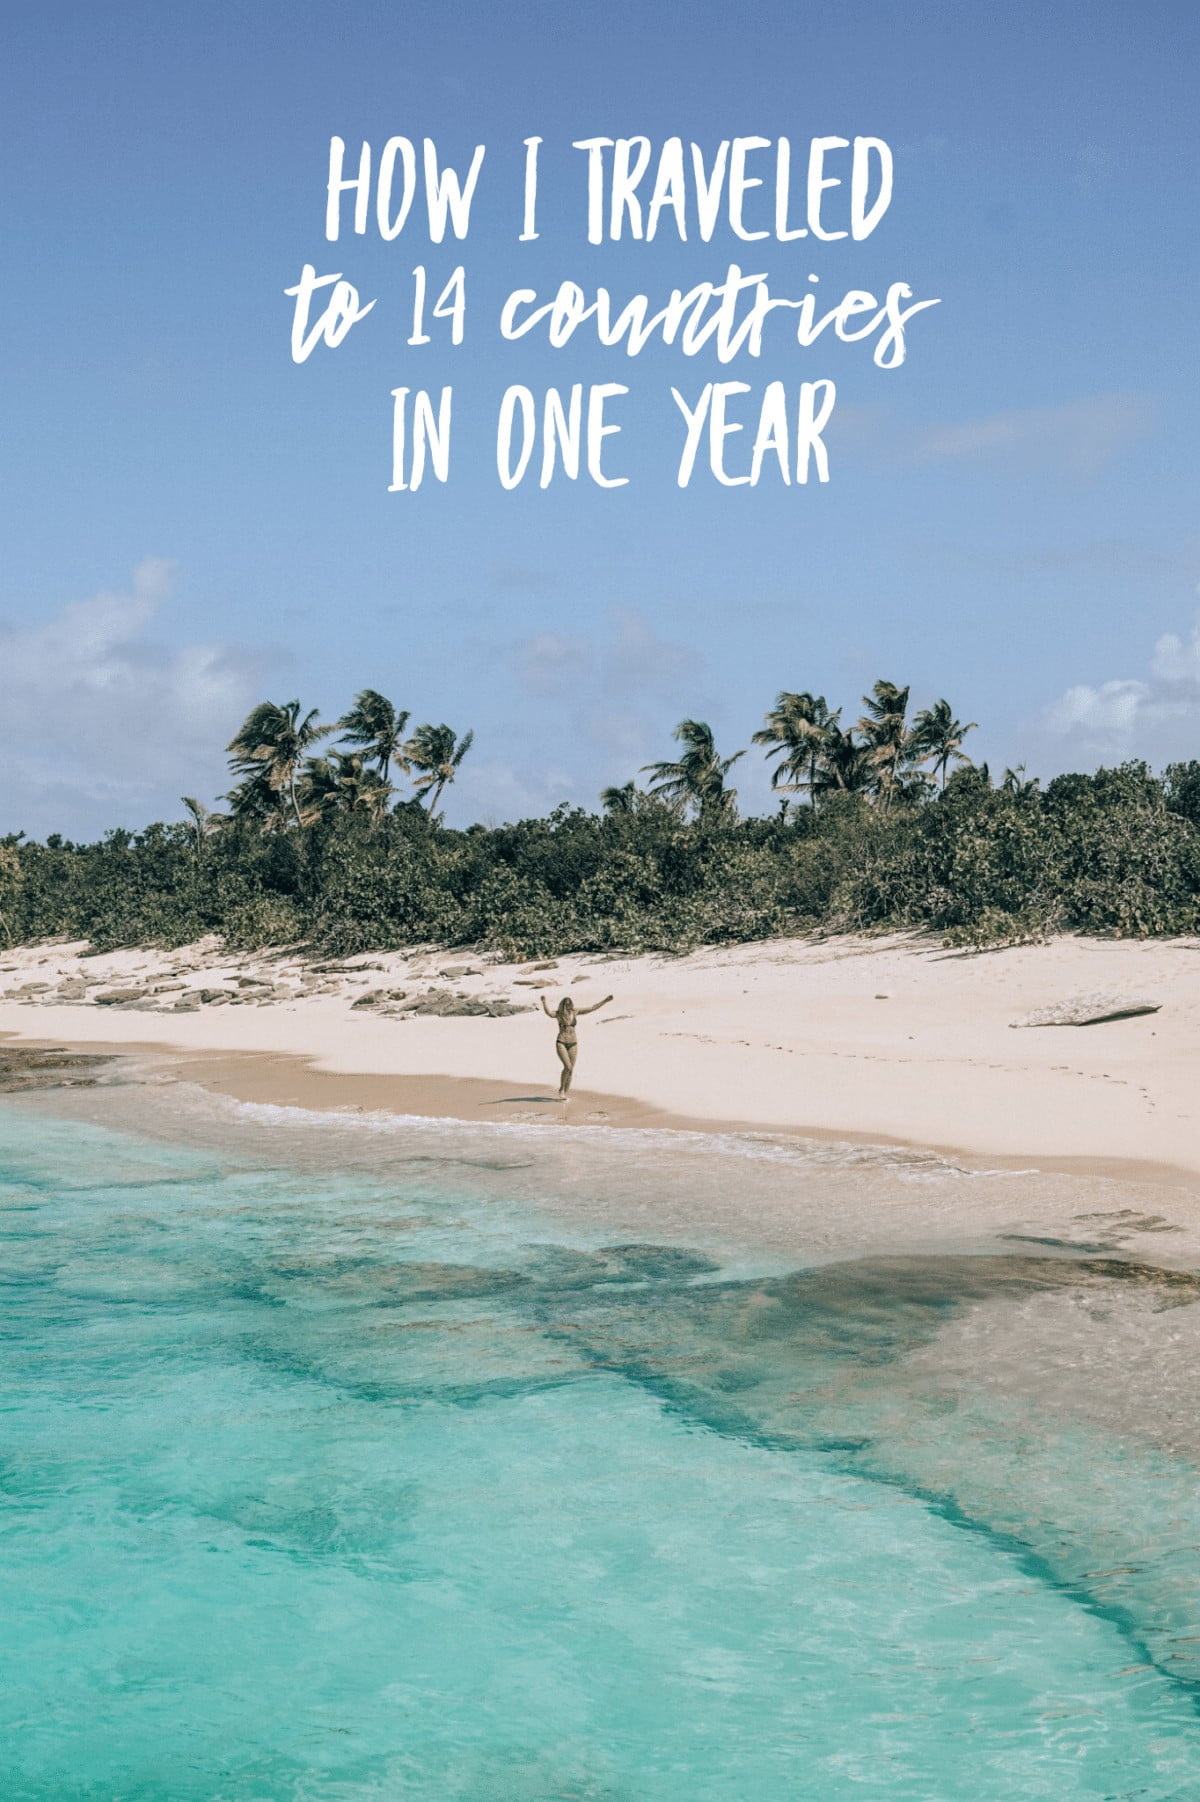 My 2018 Year in Review! Sharing all of the top travel moments, learnings from the past year and goals ahead!